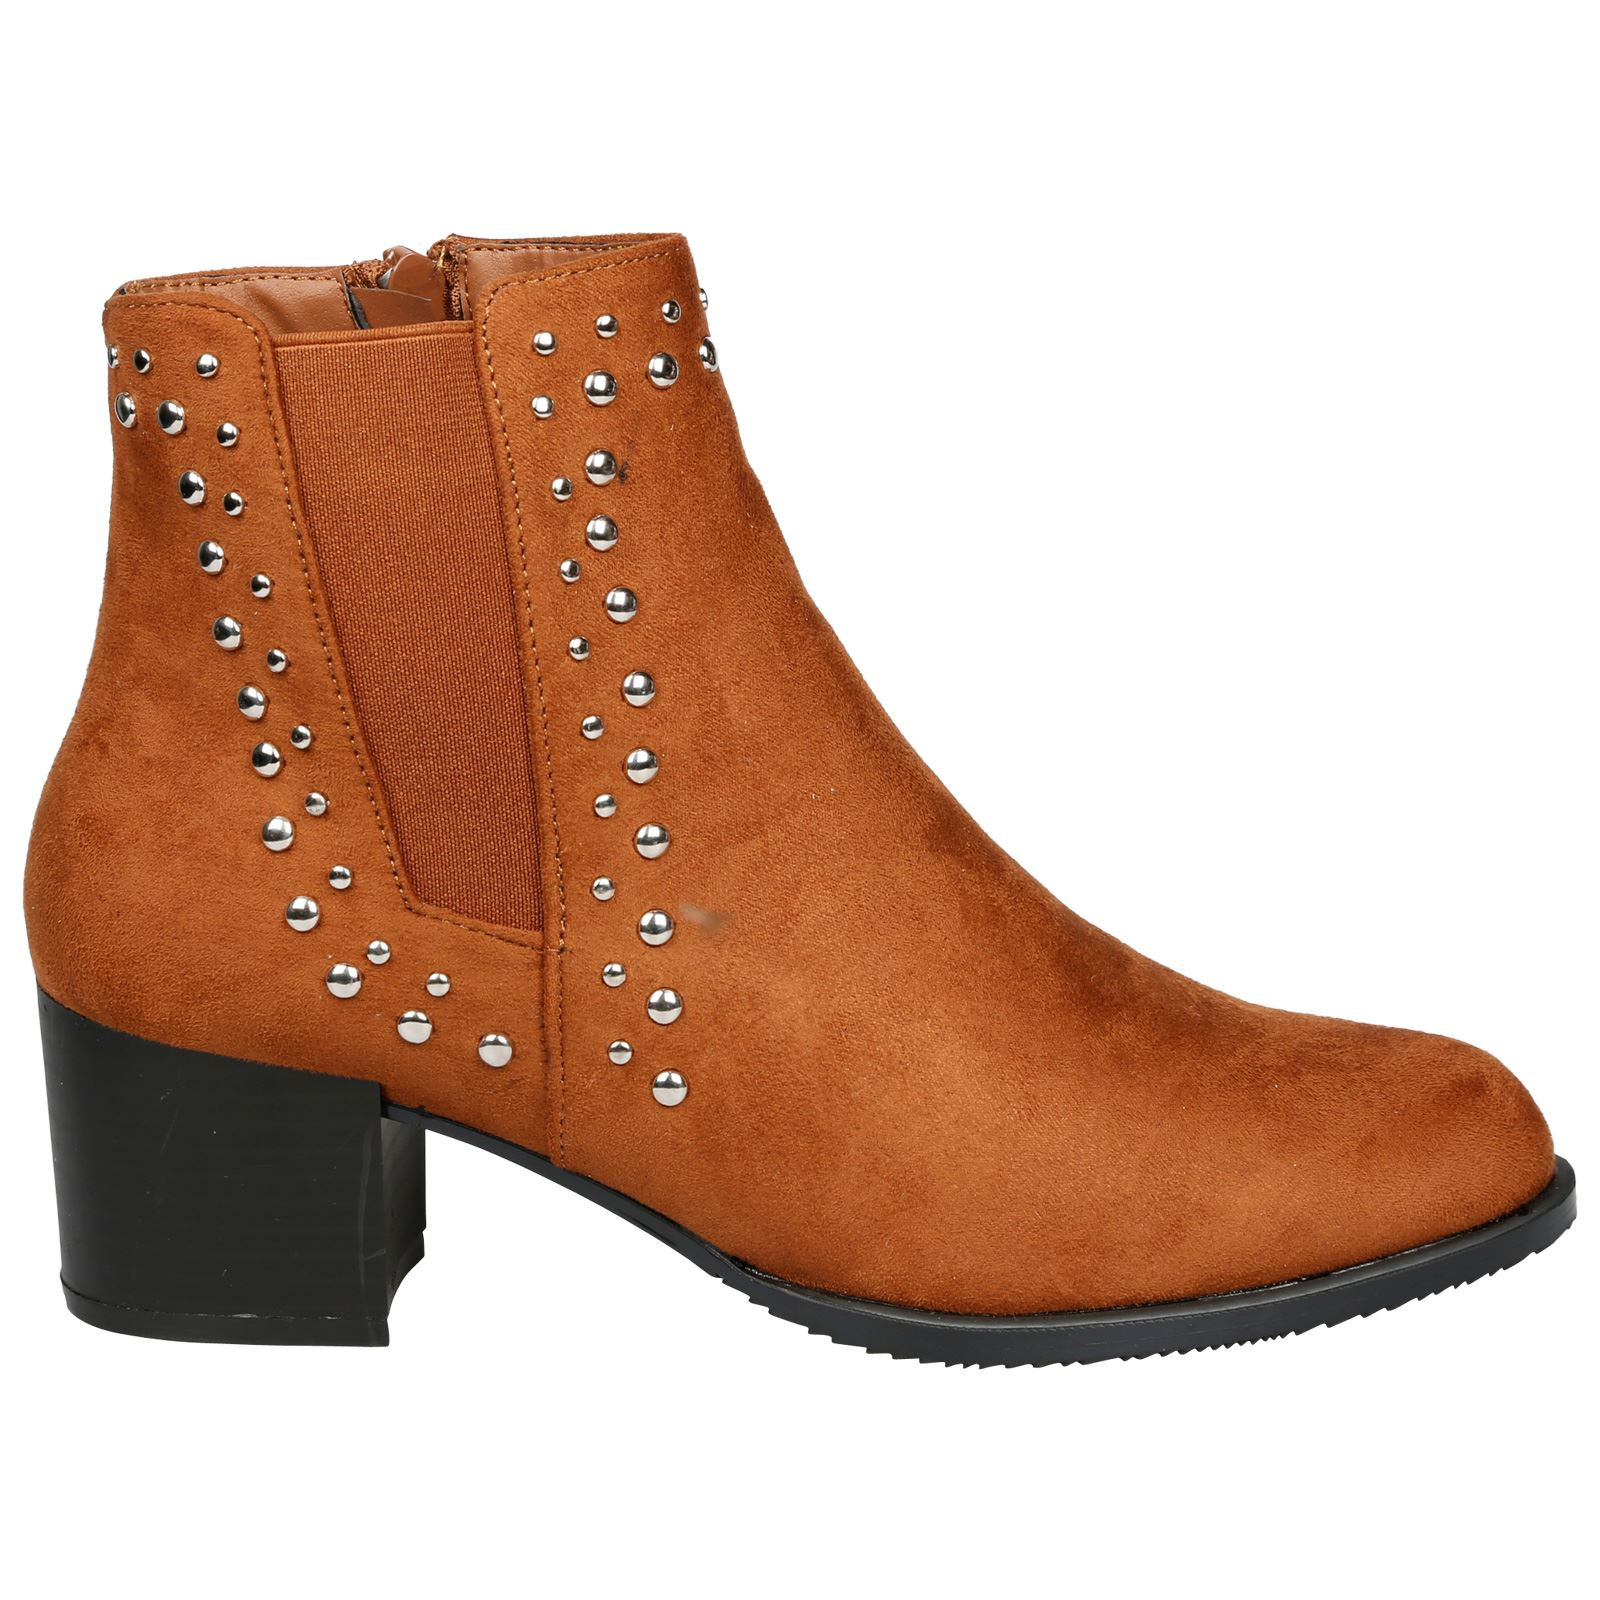 Luna-Womens-Low-Mid-Block-Heel-Studded-Chelsea-Zip-Up-Ankle-Boots-Casual-Ladies thumbnail 7